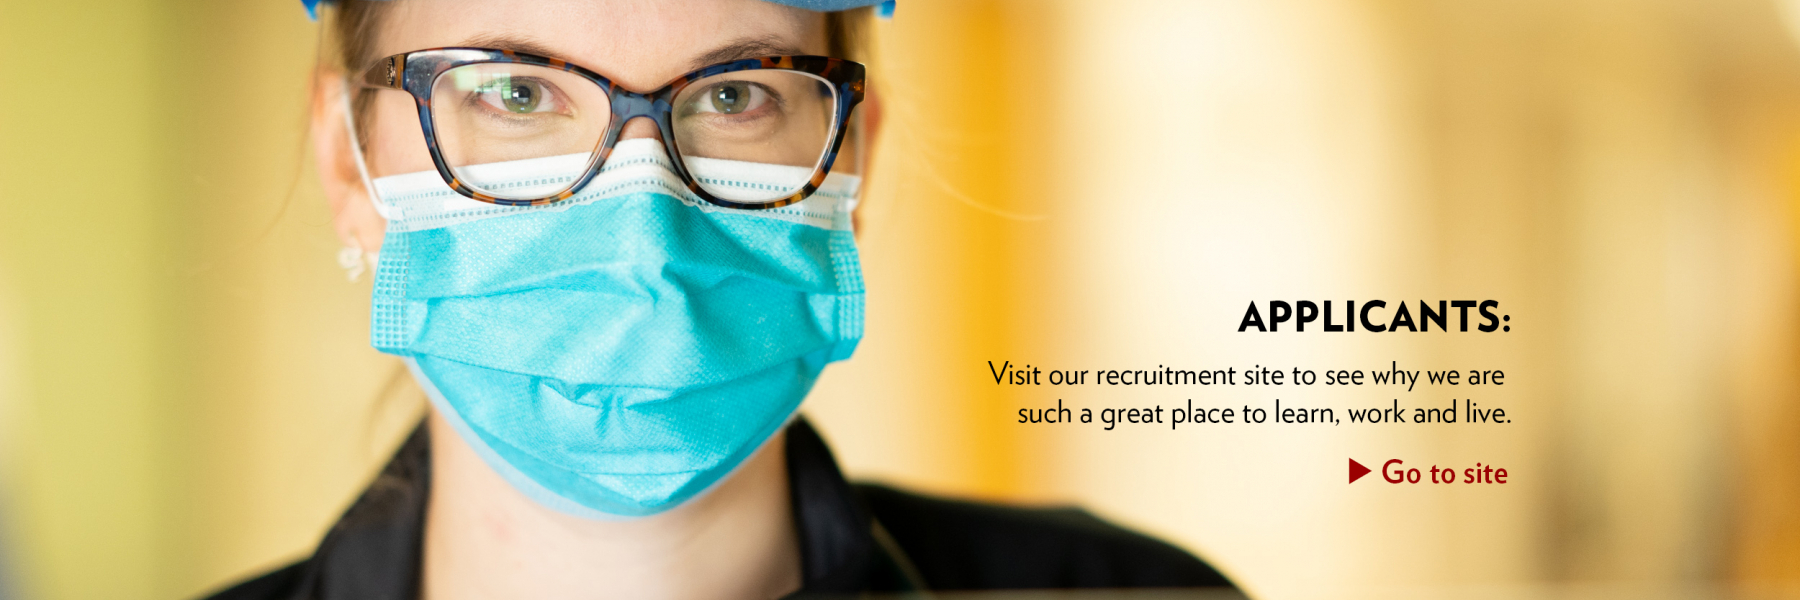 Applicants: Visit our GME site